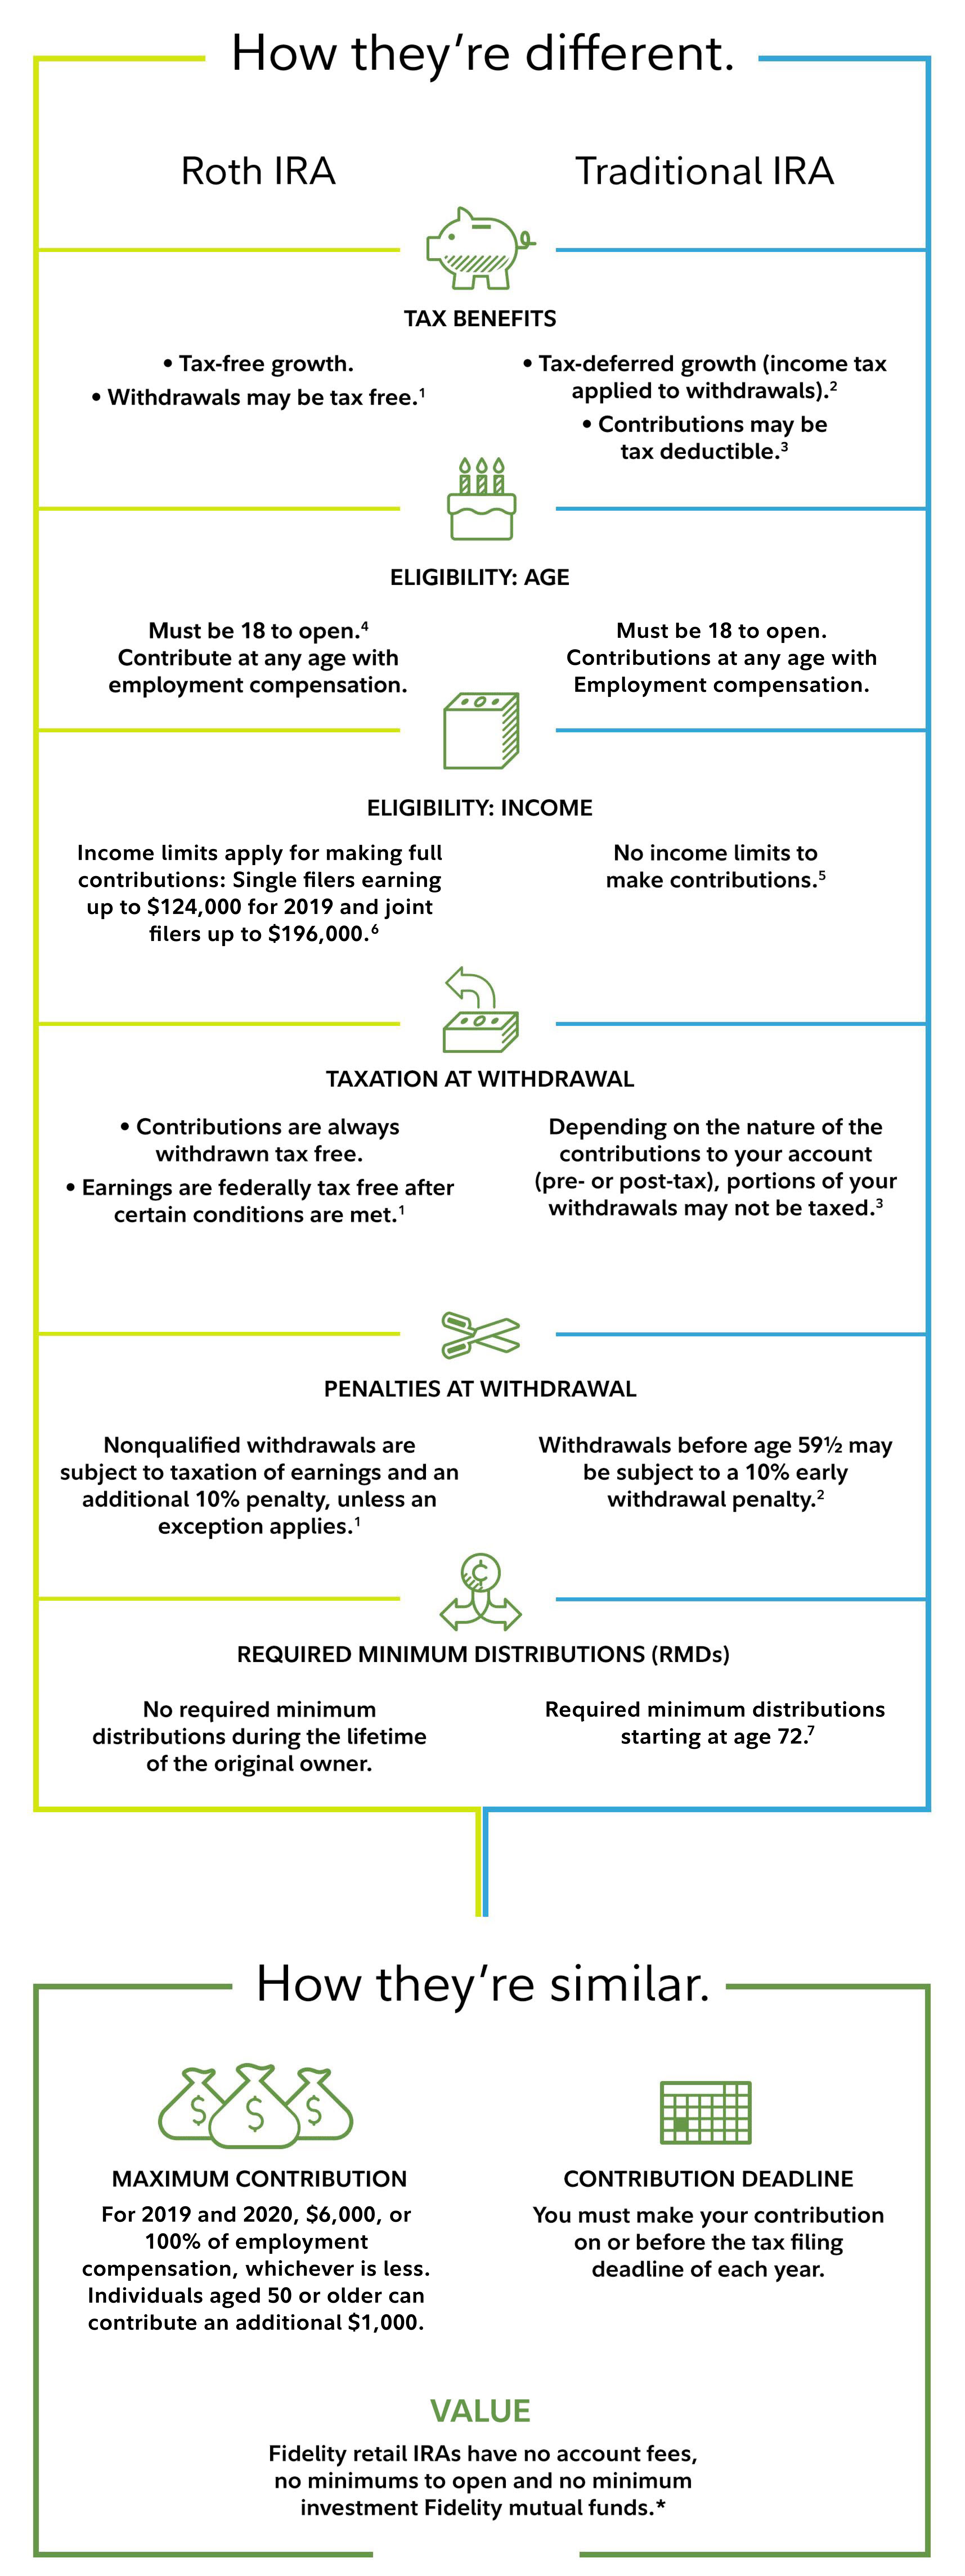 Roth Vs. Traditional IRA Infographic - MyMoney by Fidelity